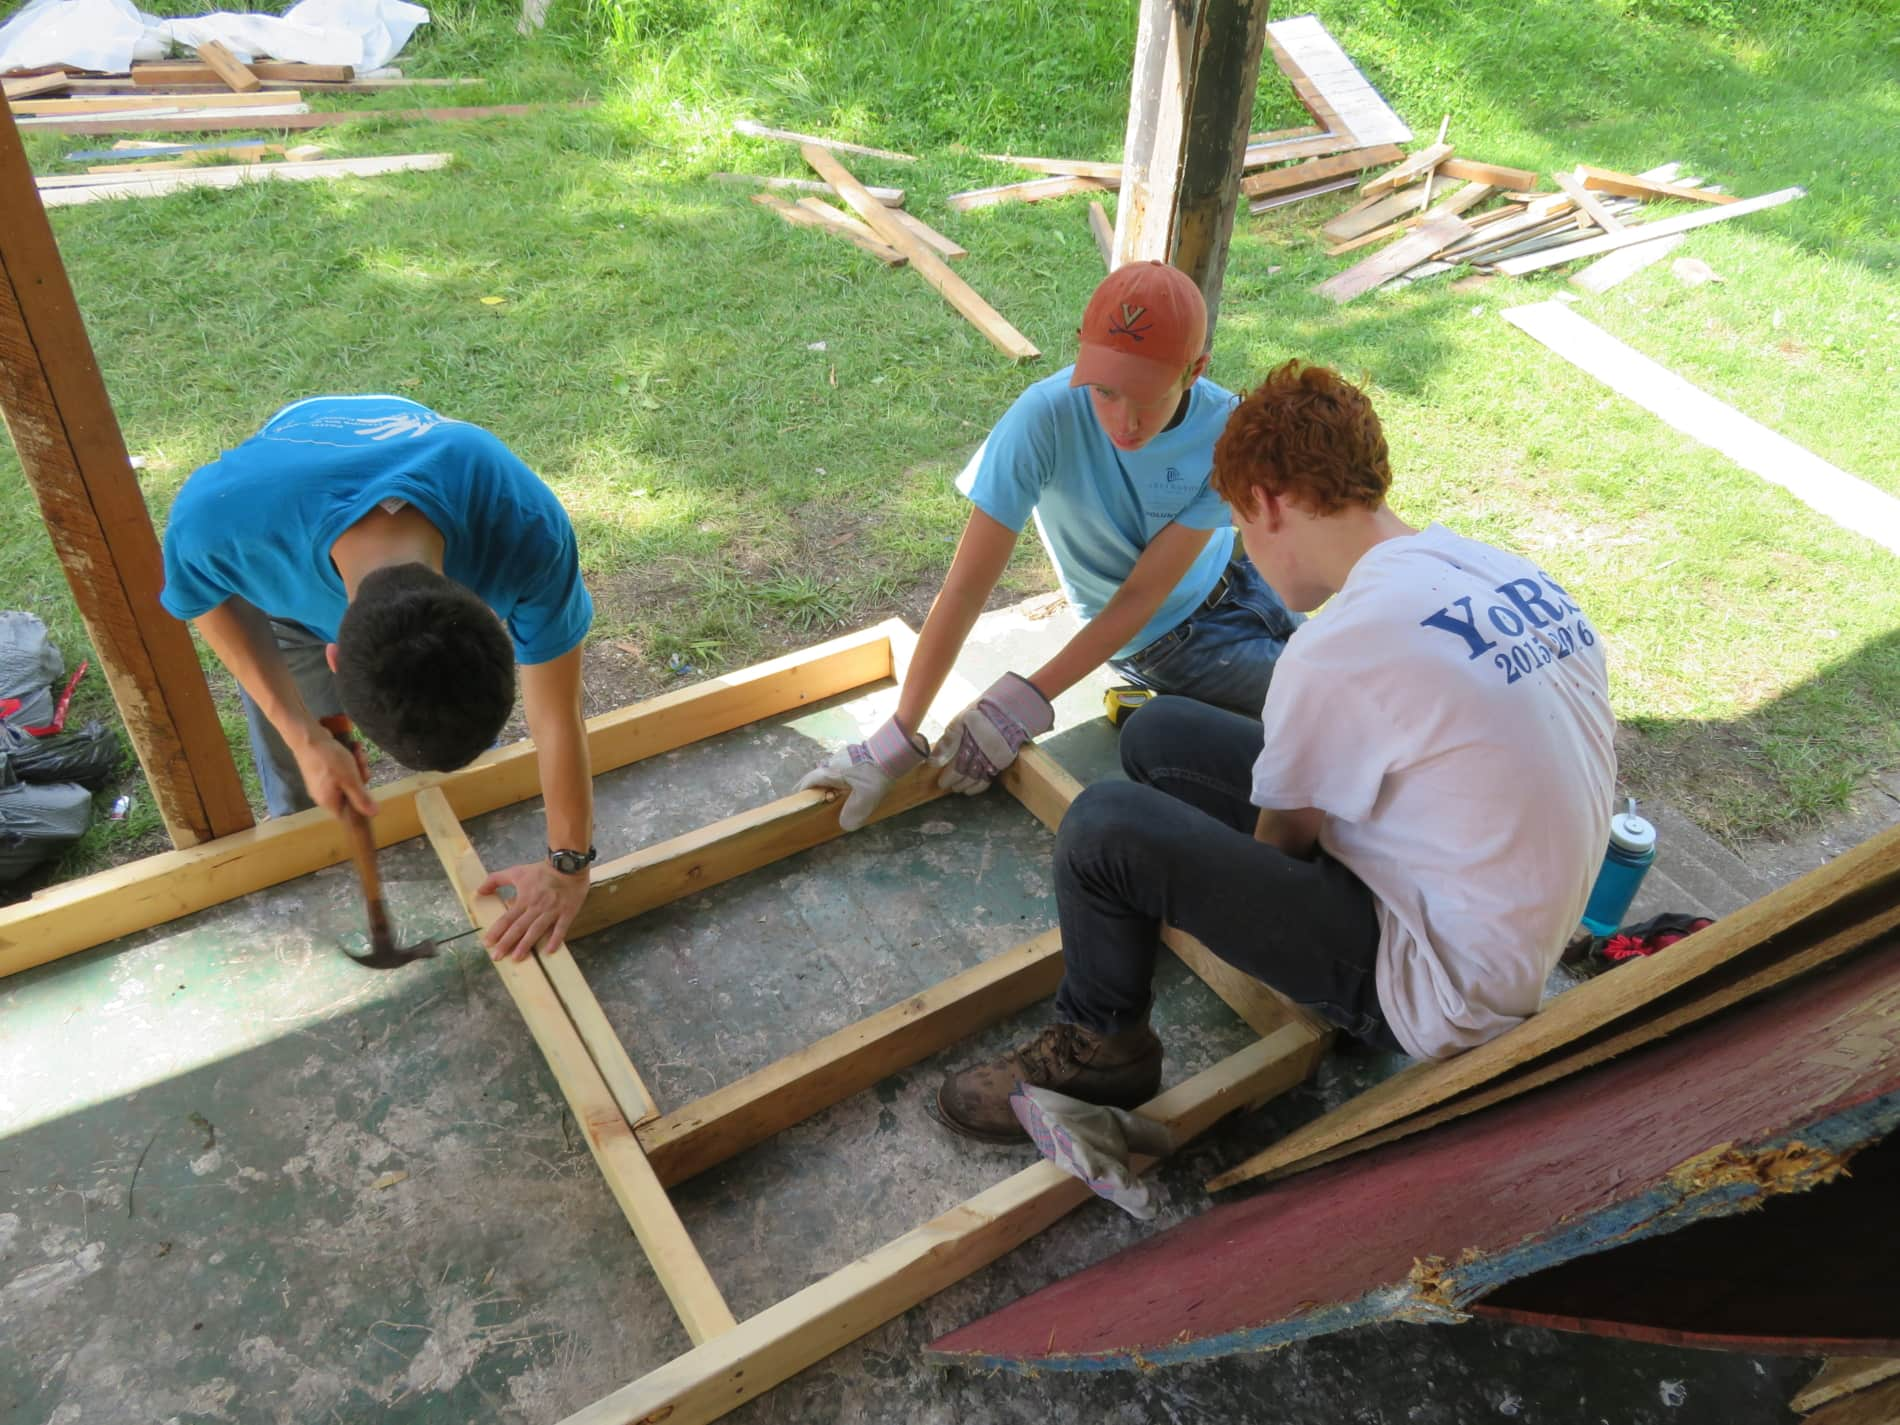 Three teenagers hammer pieces of wood together while on a youth service project.